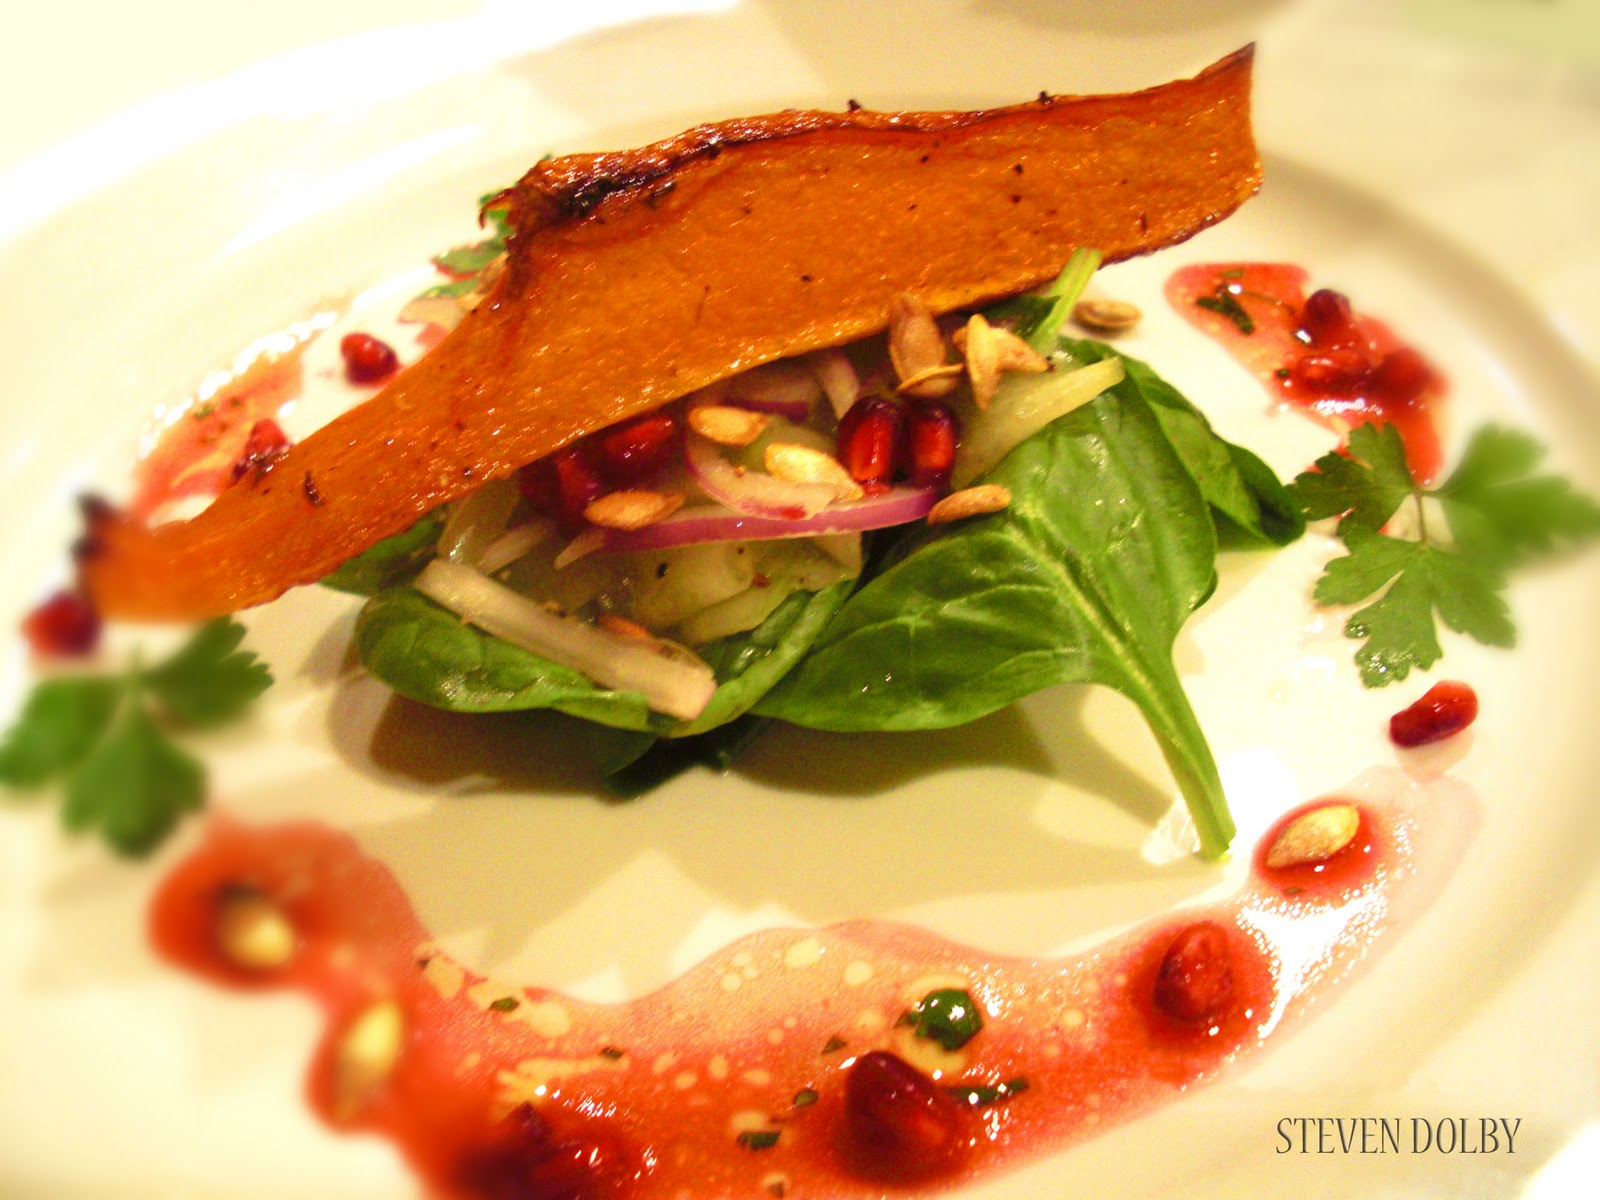 Roasted Butternut Squash and Pomegranate Salad by Steven Dolby